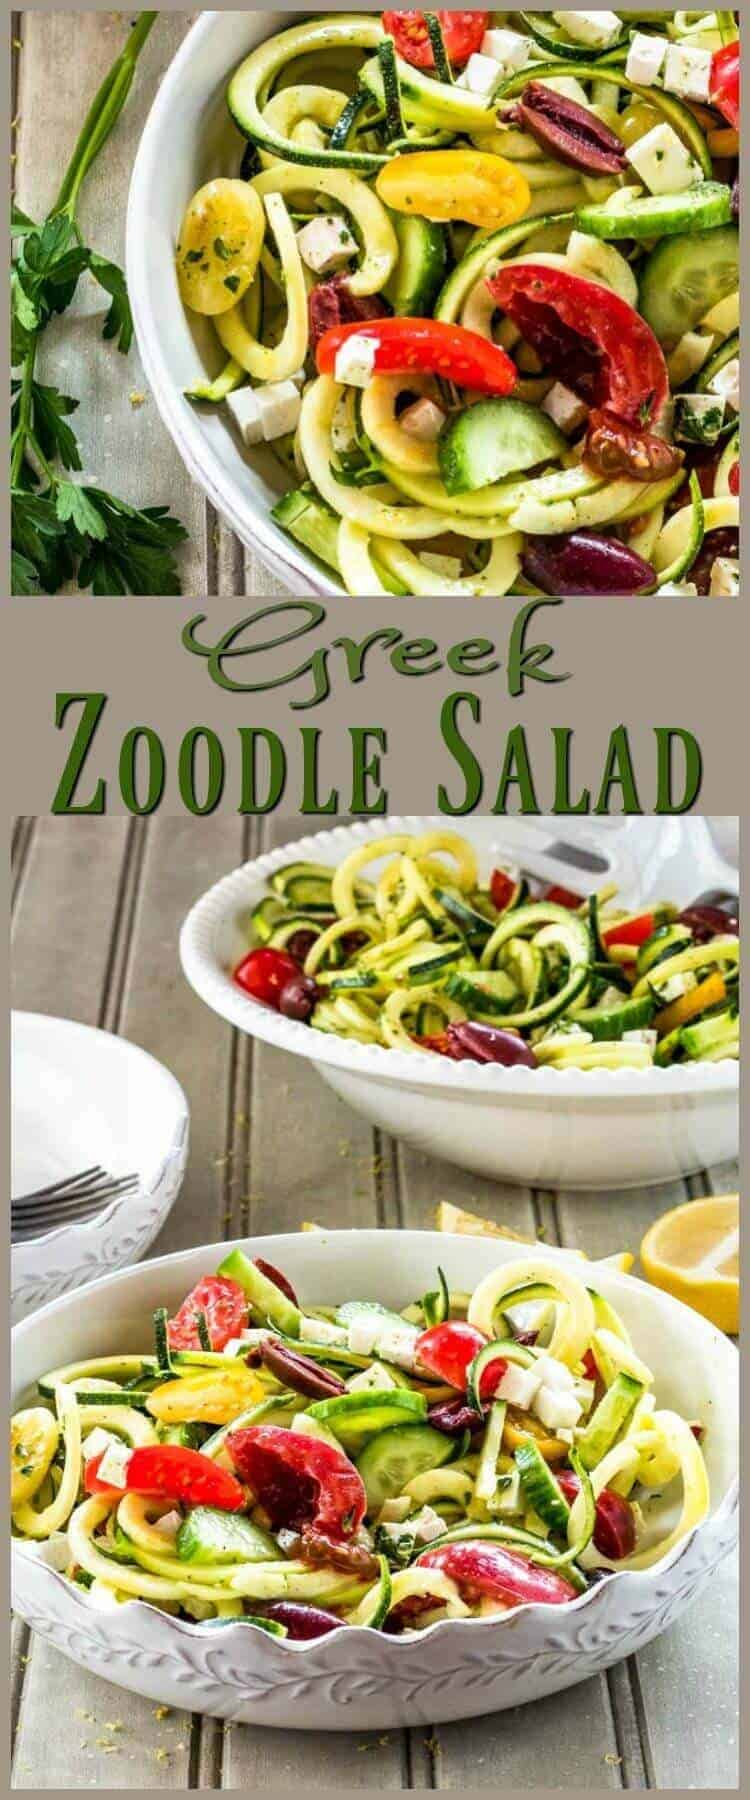 Greek Zoodle Salad Pin - Greek Zoodle Salad has everything you love about a traditional Greek salad - salty feta cheese and kalamata olives, sweet tomatoes, crispy cucumbers, and tangy lemon dressing - all tossed with nutritious zucchini. Get that spiralizer off the shelf, and in 15 minutes you'll be enjoying this tasty Greek salad! #spiralizer #zoodlesalad #Greeksalad